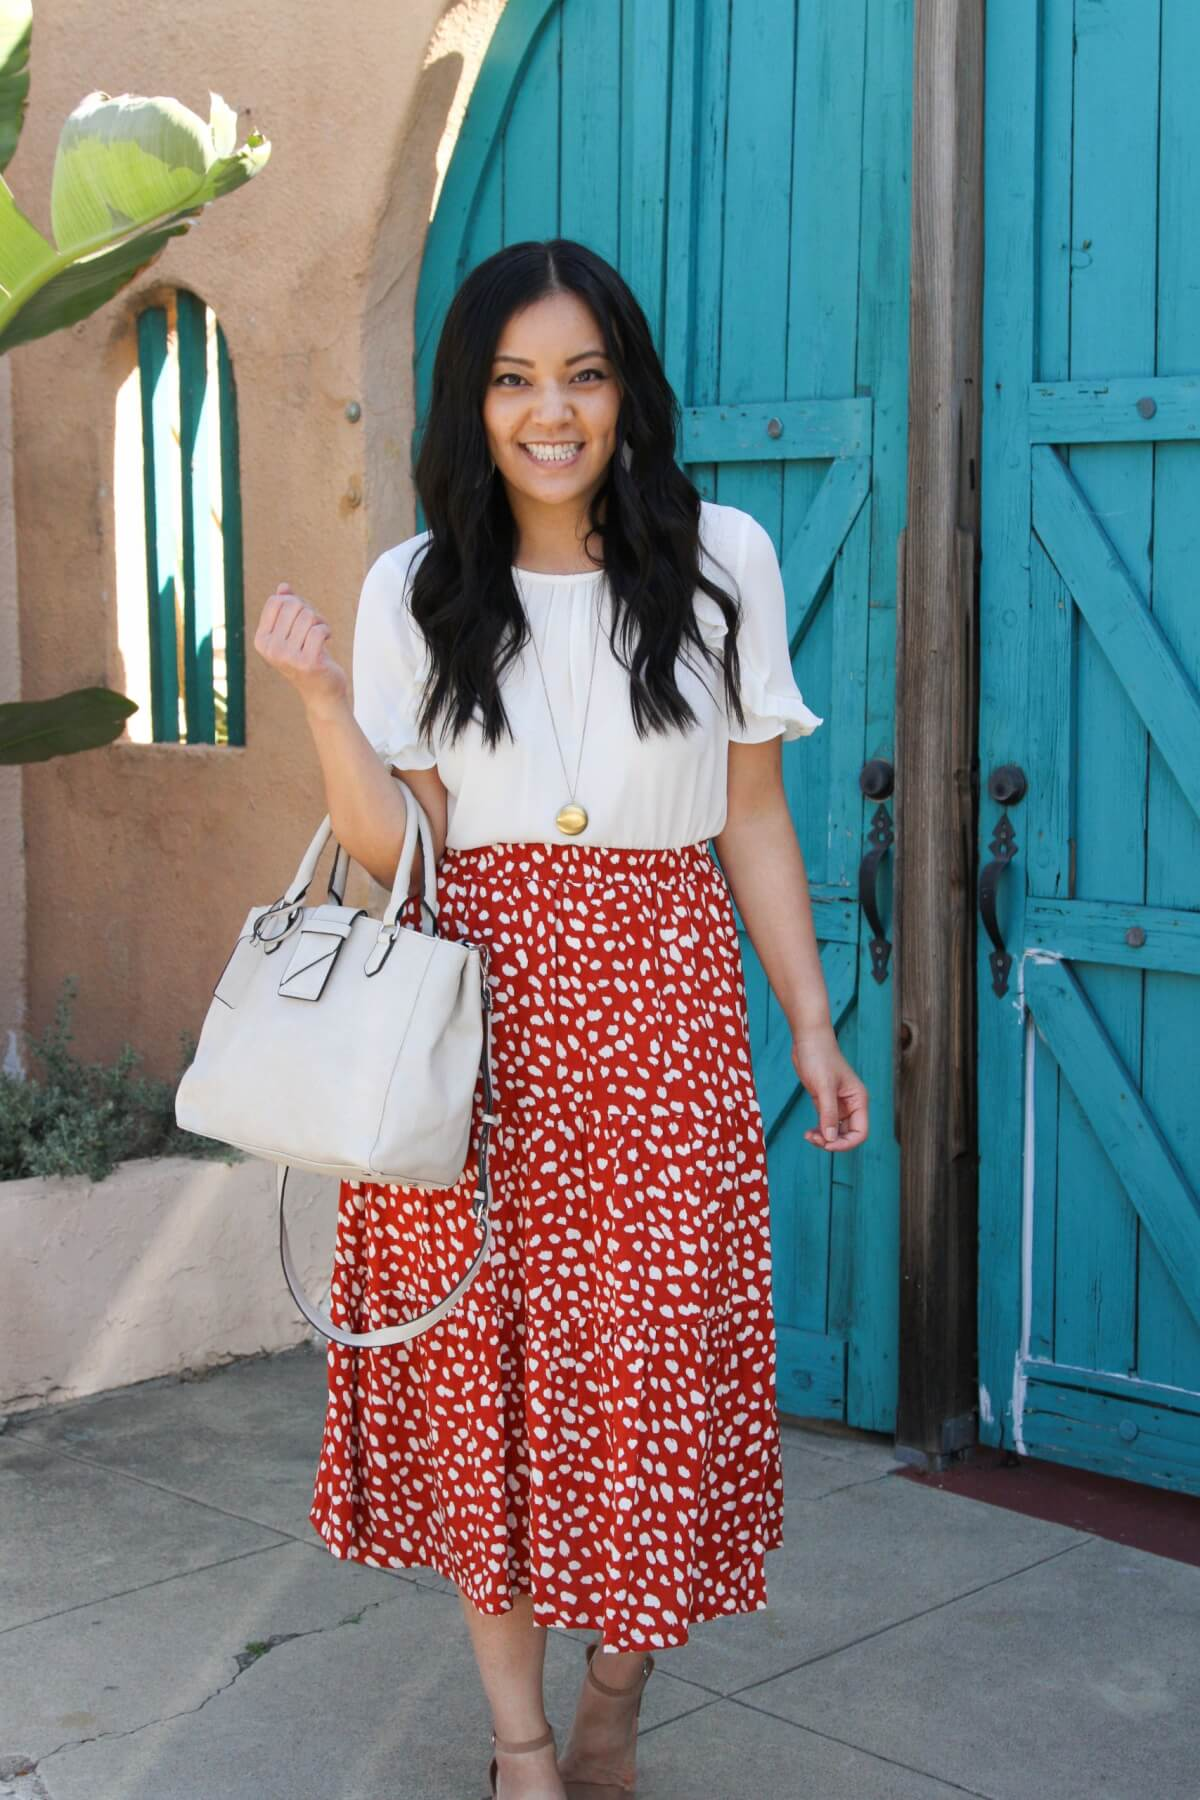 white top for spring: white top, printed skirt, statement necklace, nude heels, white bag